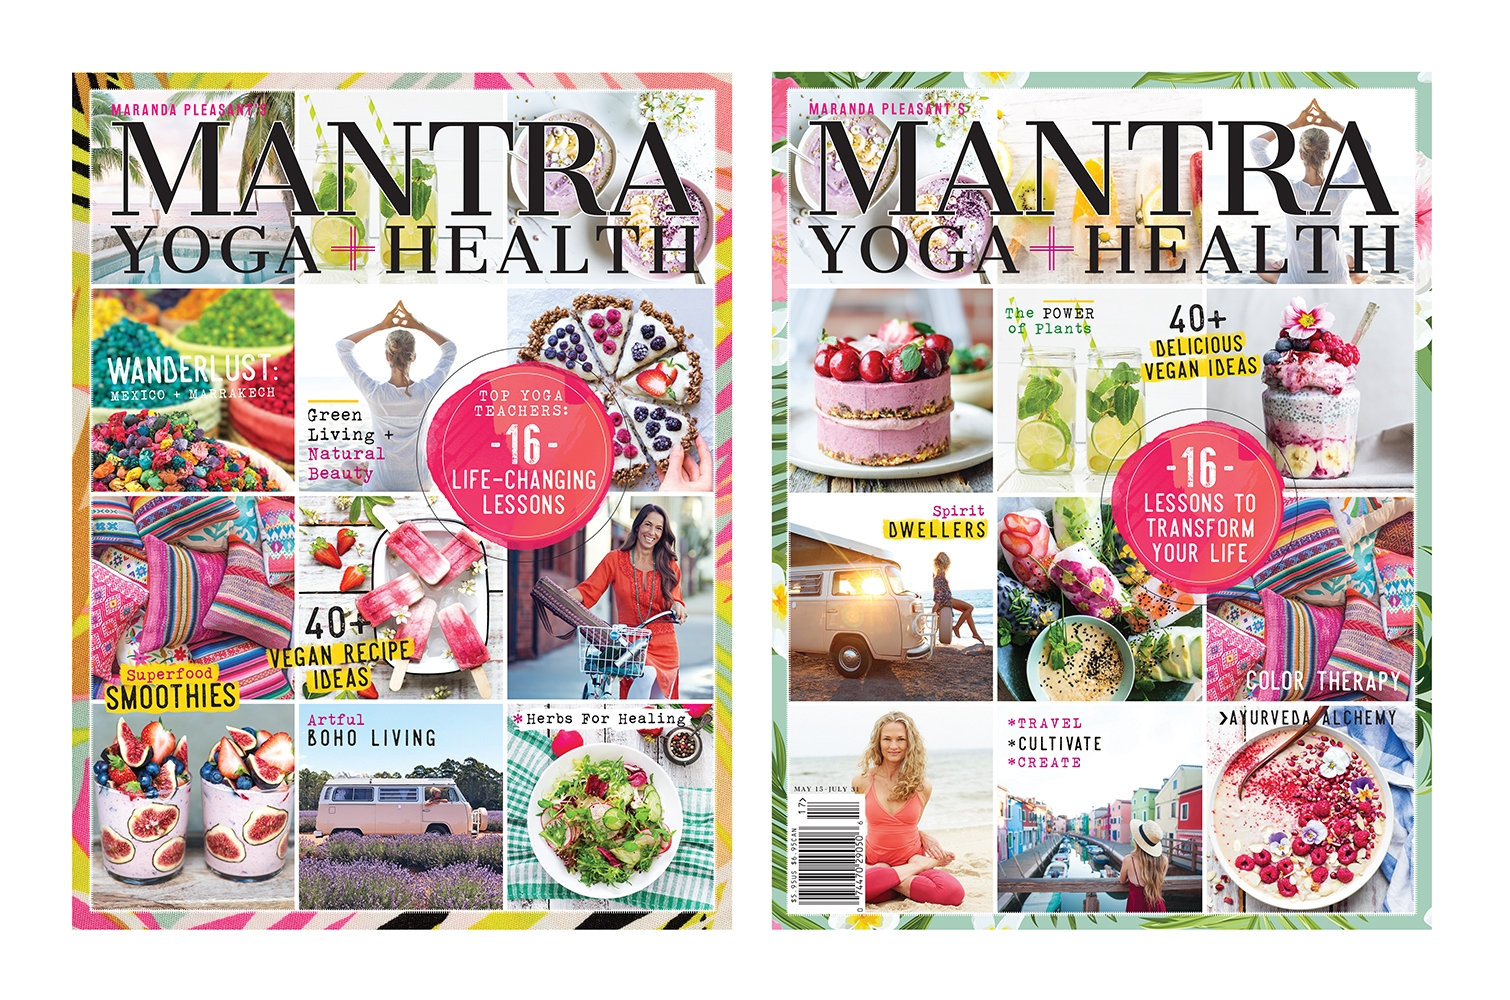 See my feature in Mantra Magazine - I am honored to be a part of Mantra Yoga + Health Magazine issue 17. Click here to check out my interview entitled